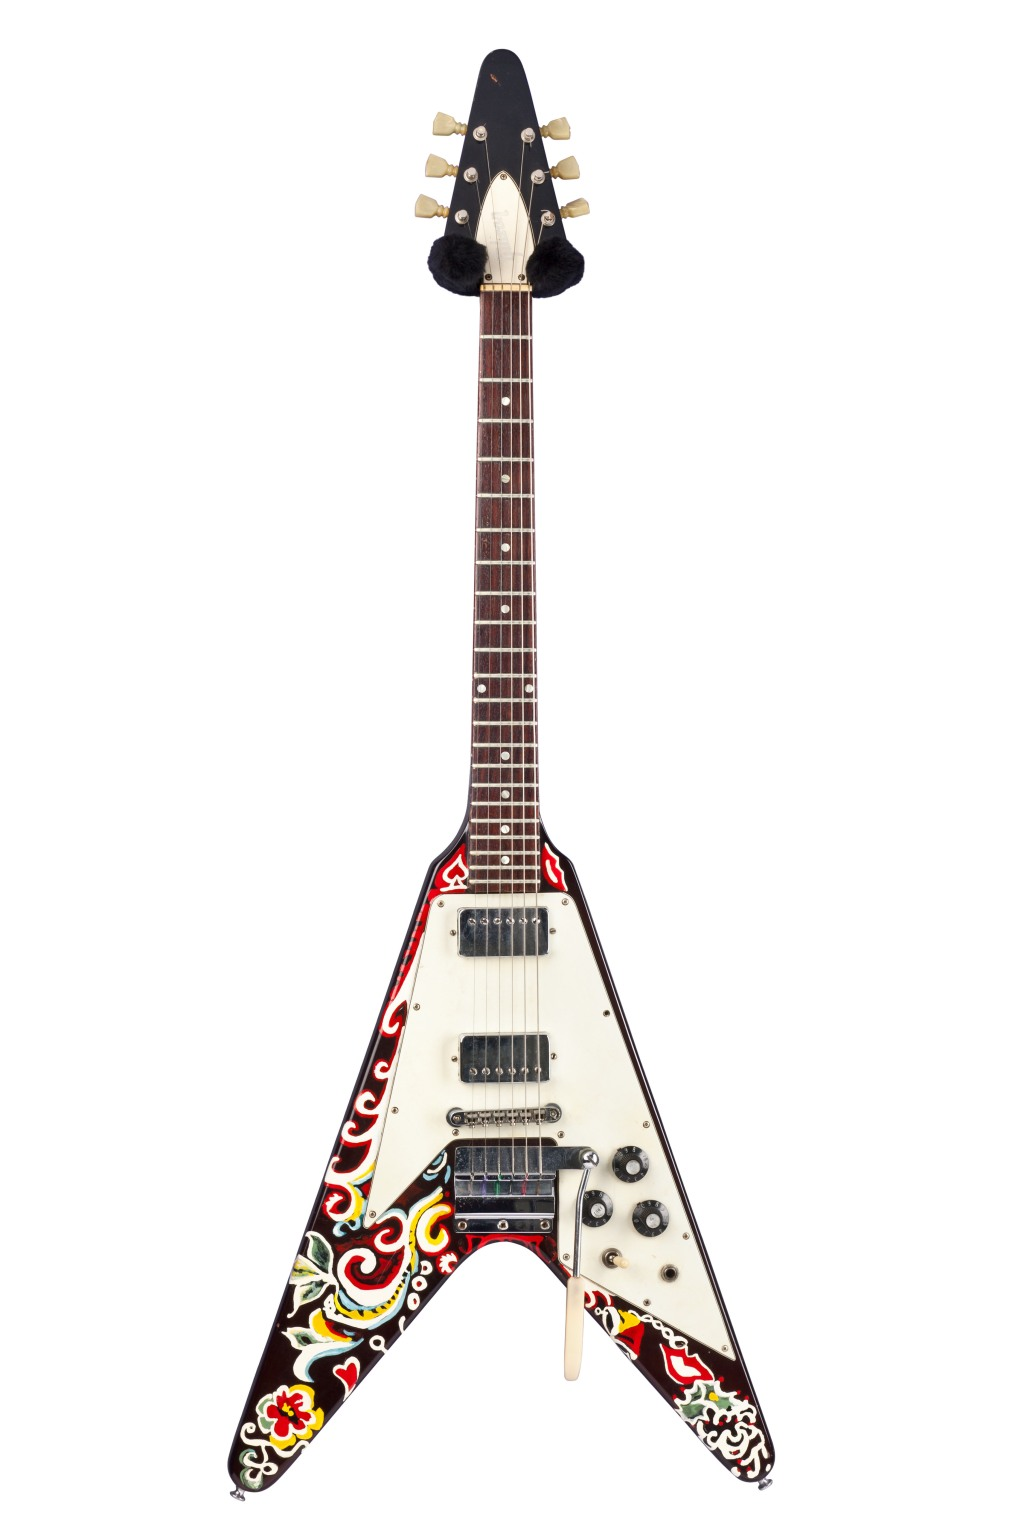 """One of Jimi Hendrix's main guitars between 1967 and 1969, this Gibson is said to be heard on Electric Ladyland, especially on the solo during """"All Along the Watchtower."""" Hendrix used nail polish to paint the guitar himself."""